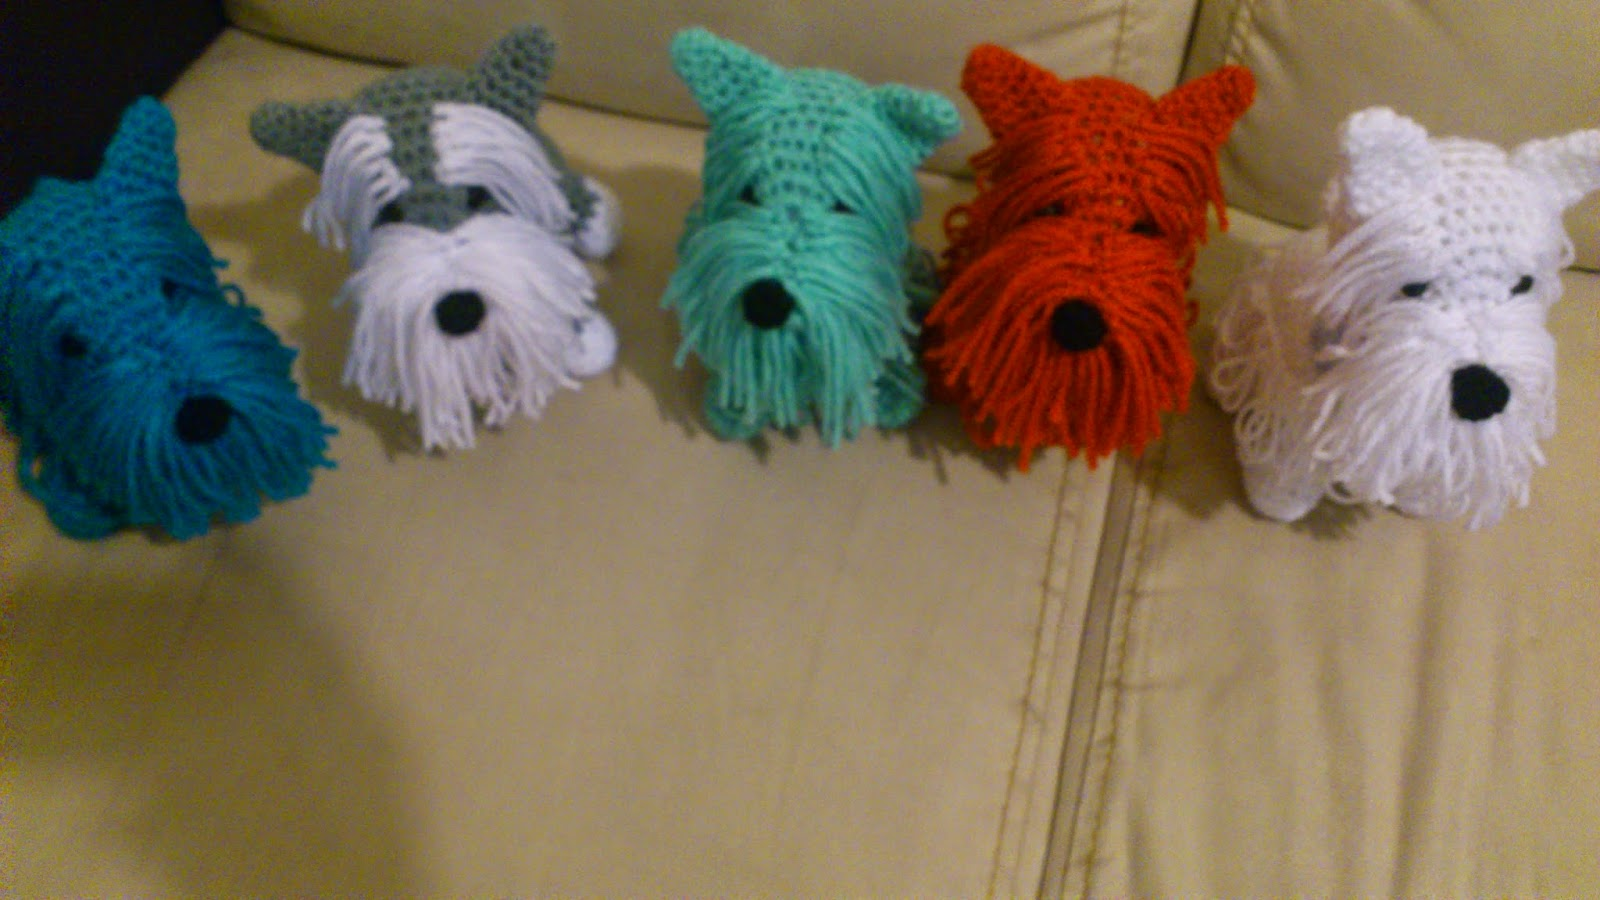 Free Crochet Patterns For Very Small Dogs : NOVEDADES JENPOALI: PATRoN DE FERRONI CHICOS